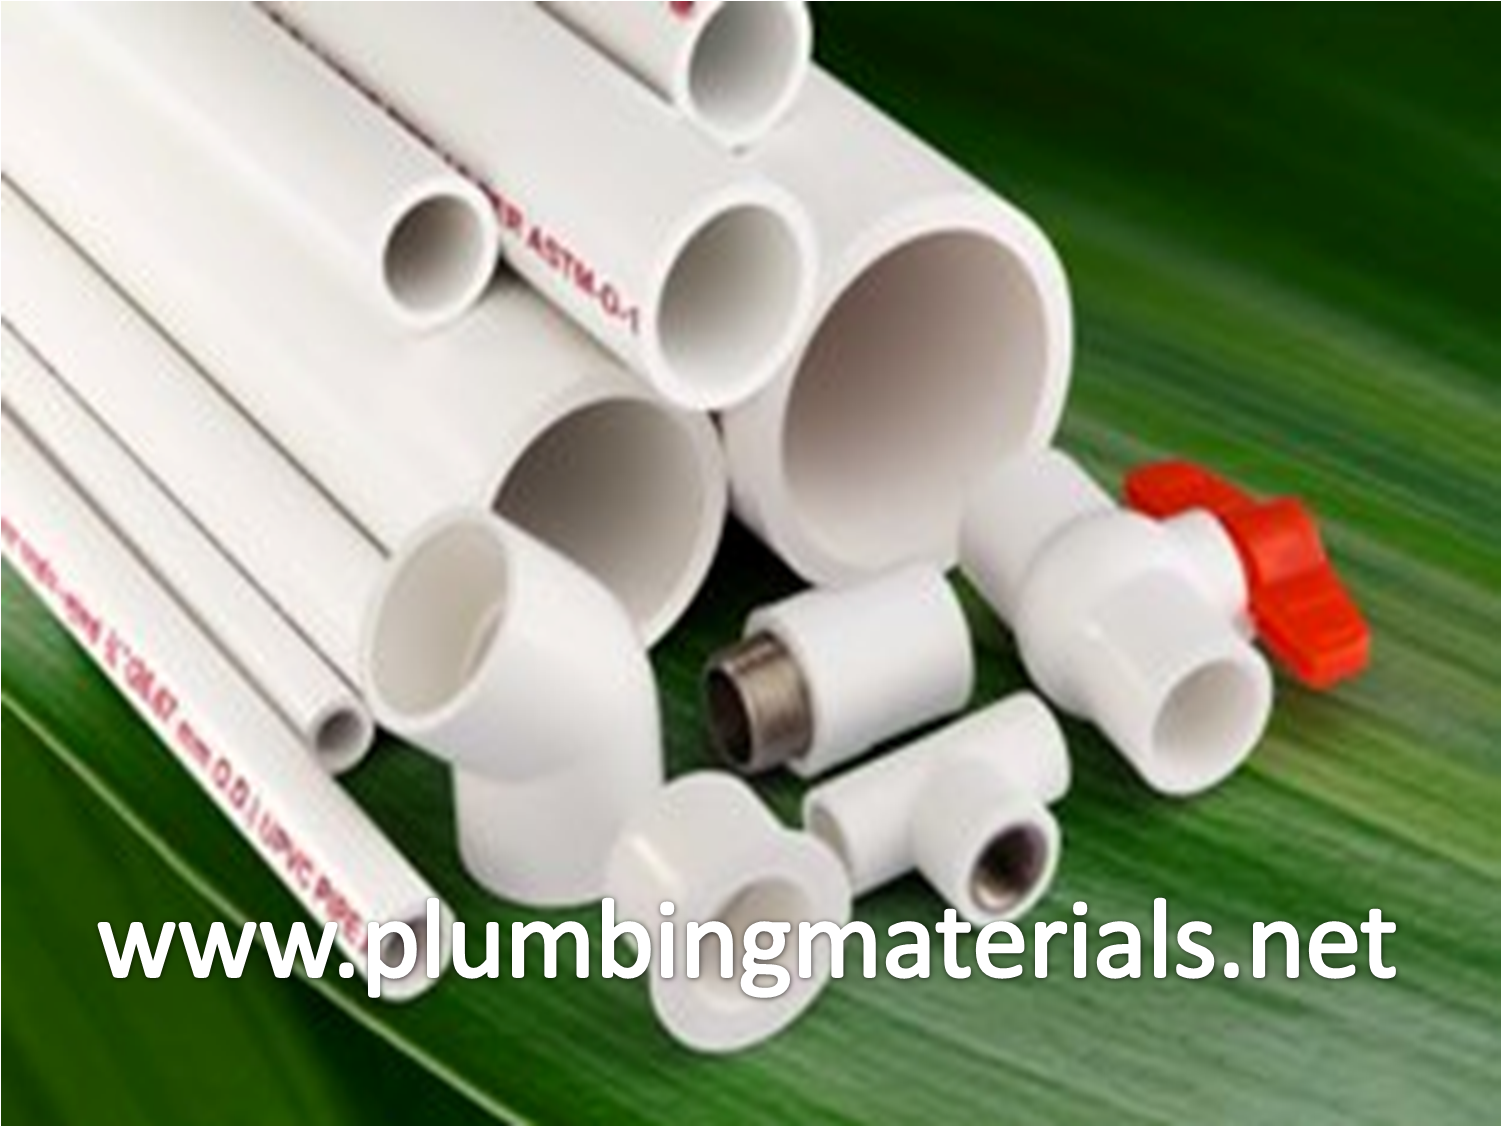 Service Drop Pipes Pipes : Prince dealers in chennai at prince pipes fittings we pair the